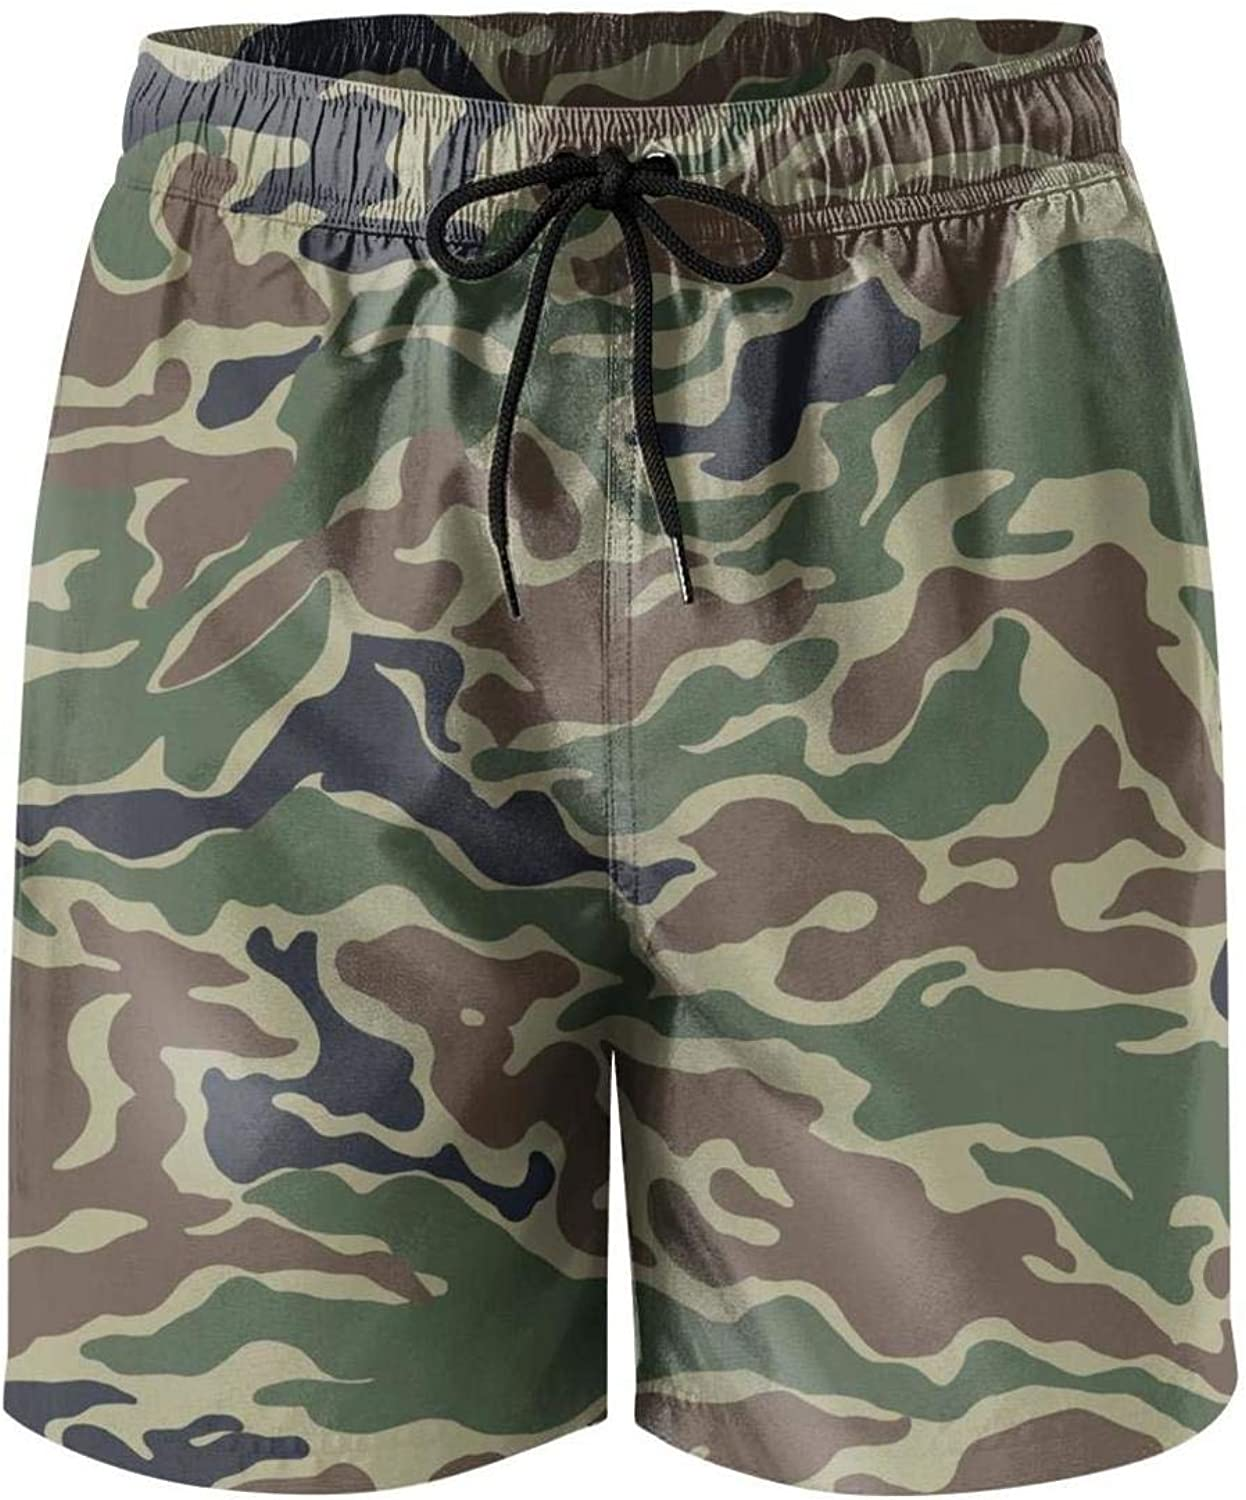 Swimming Trunks Quick Dry Outdoor Beach Shorts Finaif Men Fashion-Camouflage